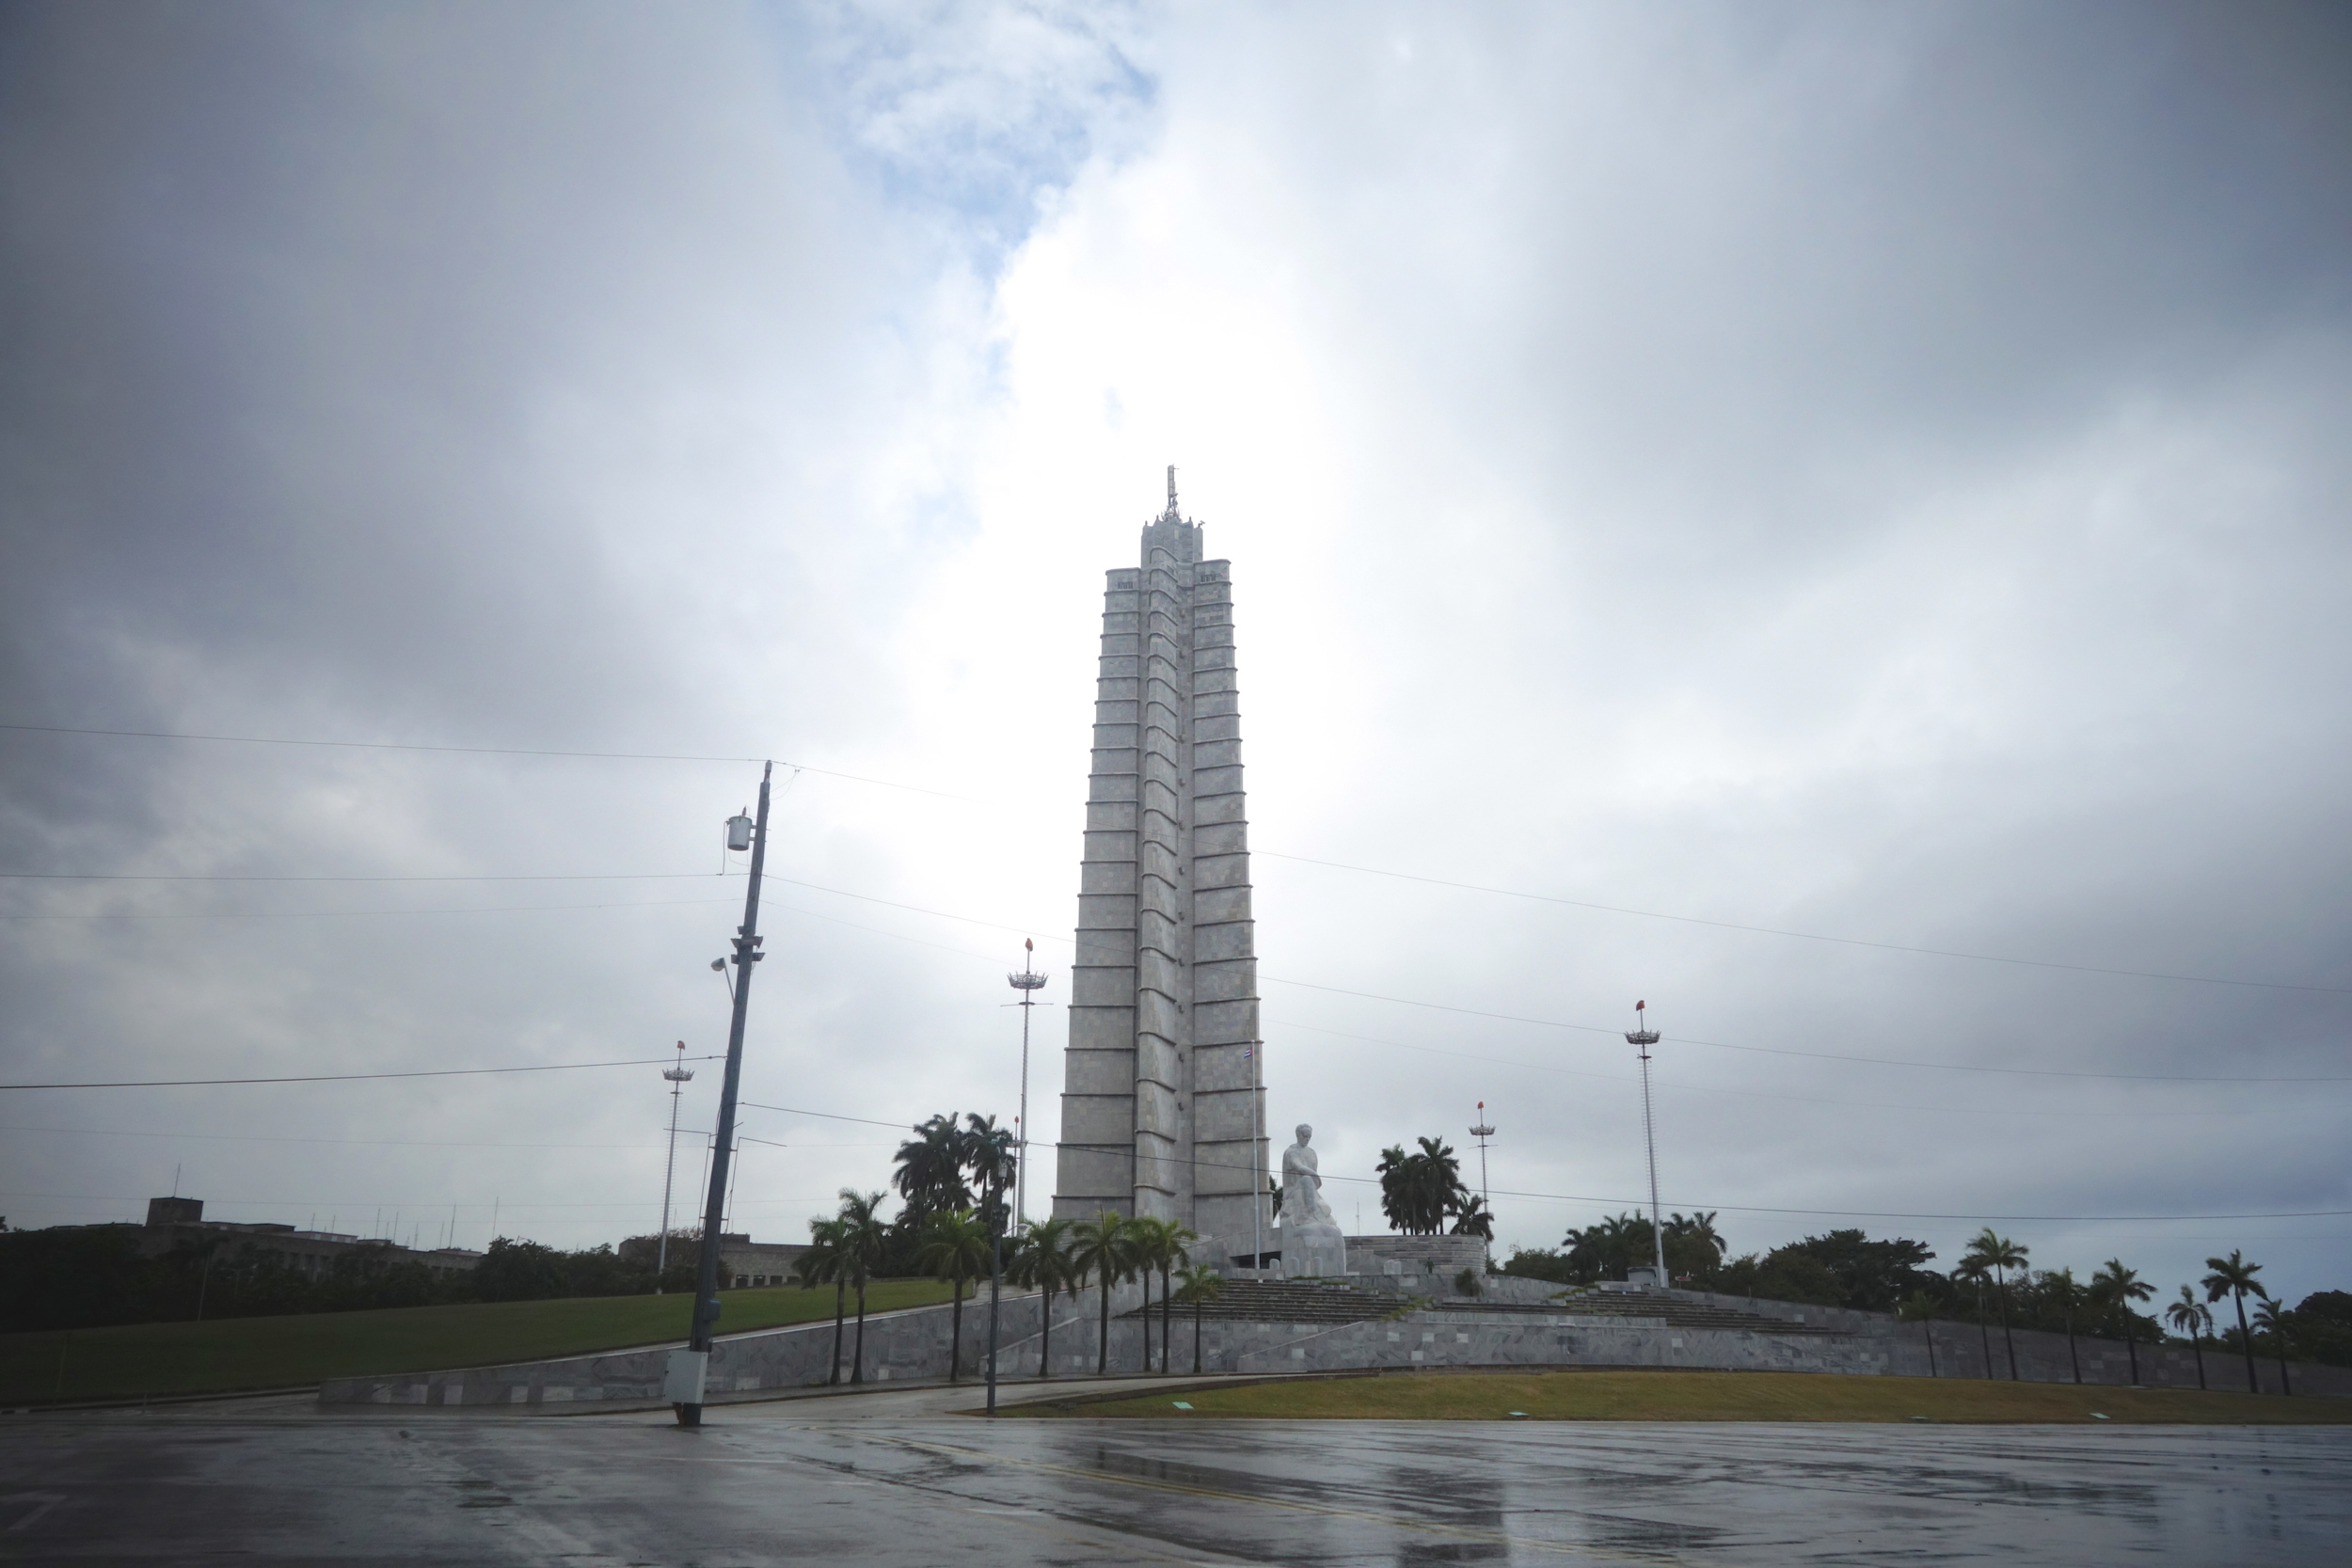 The Jose Marti Memorial honors the national hero who was instrumental in leading and winning Cuba's independence from Spain.